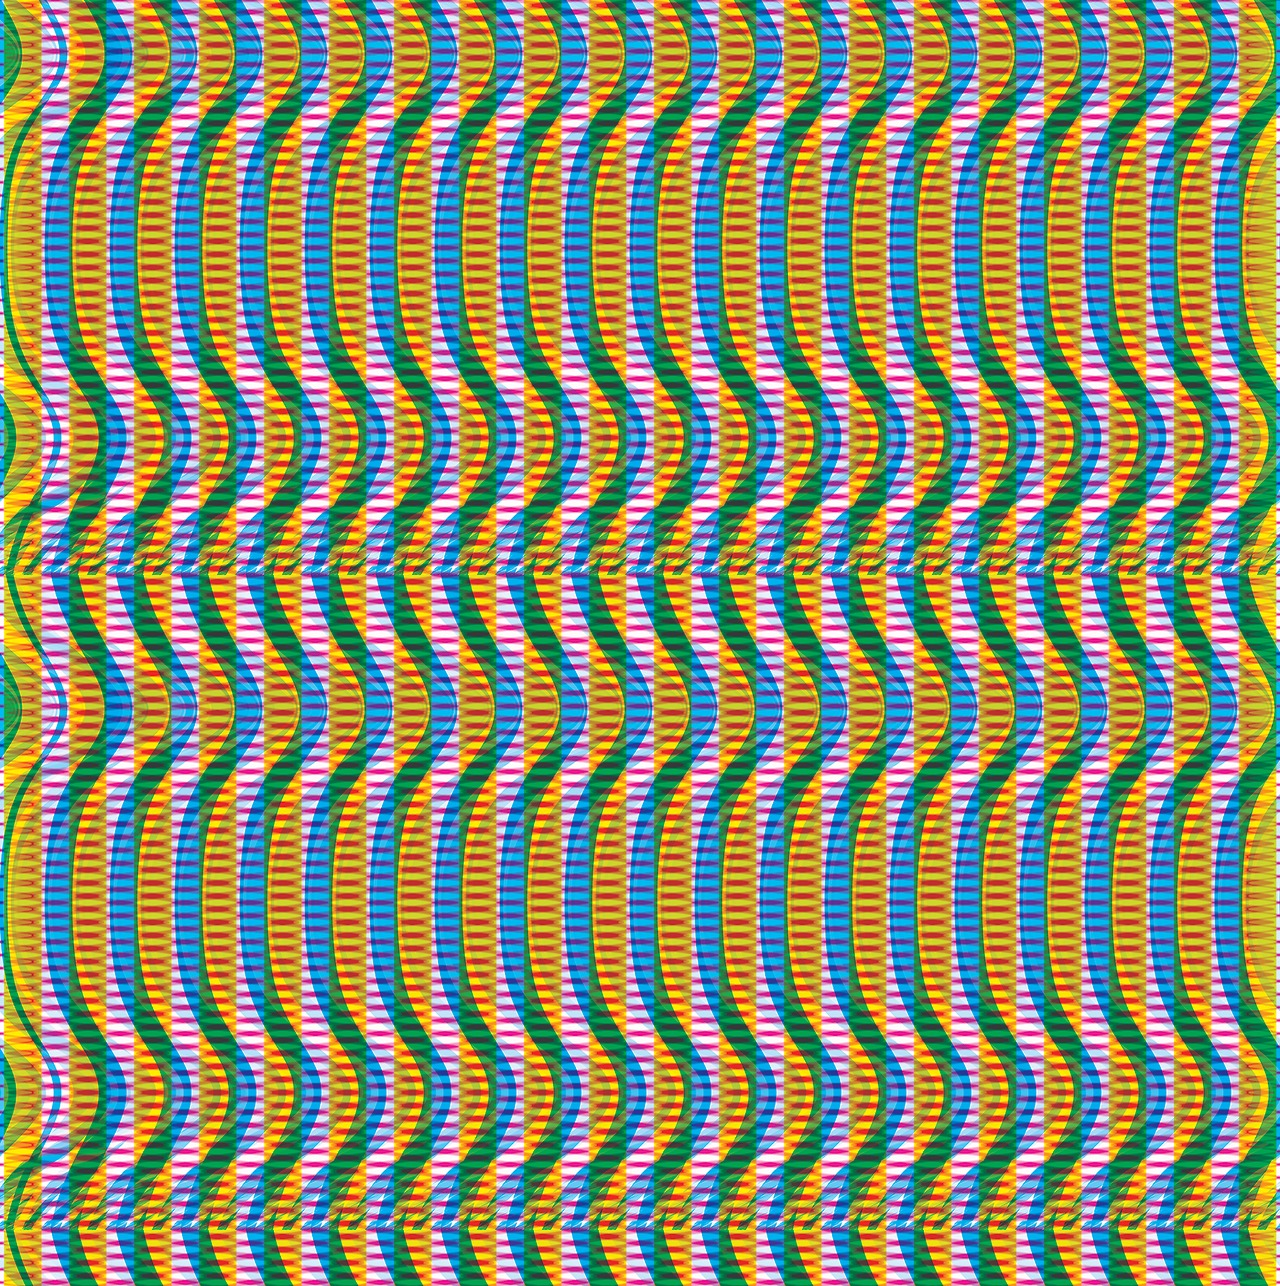 Image from http://danieltemkin.com/Content/Glitchometry ...